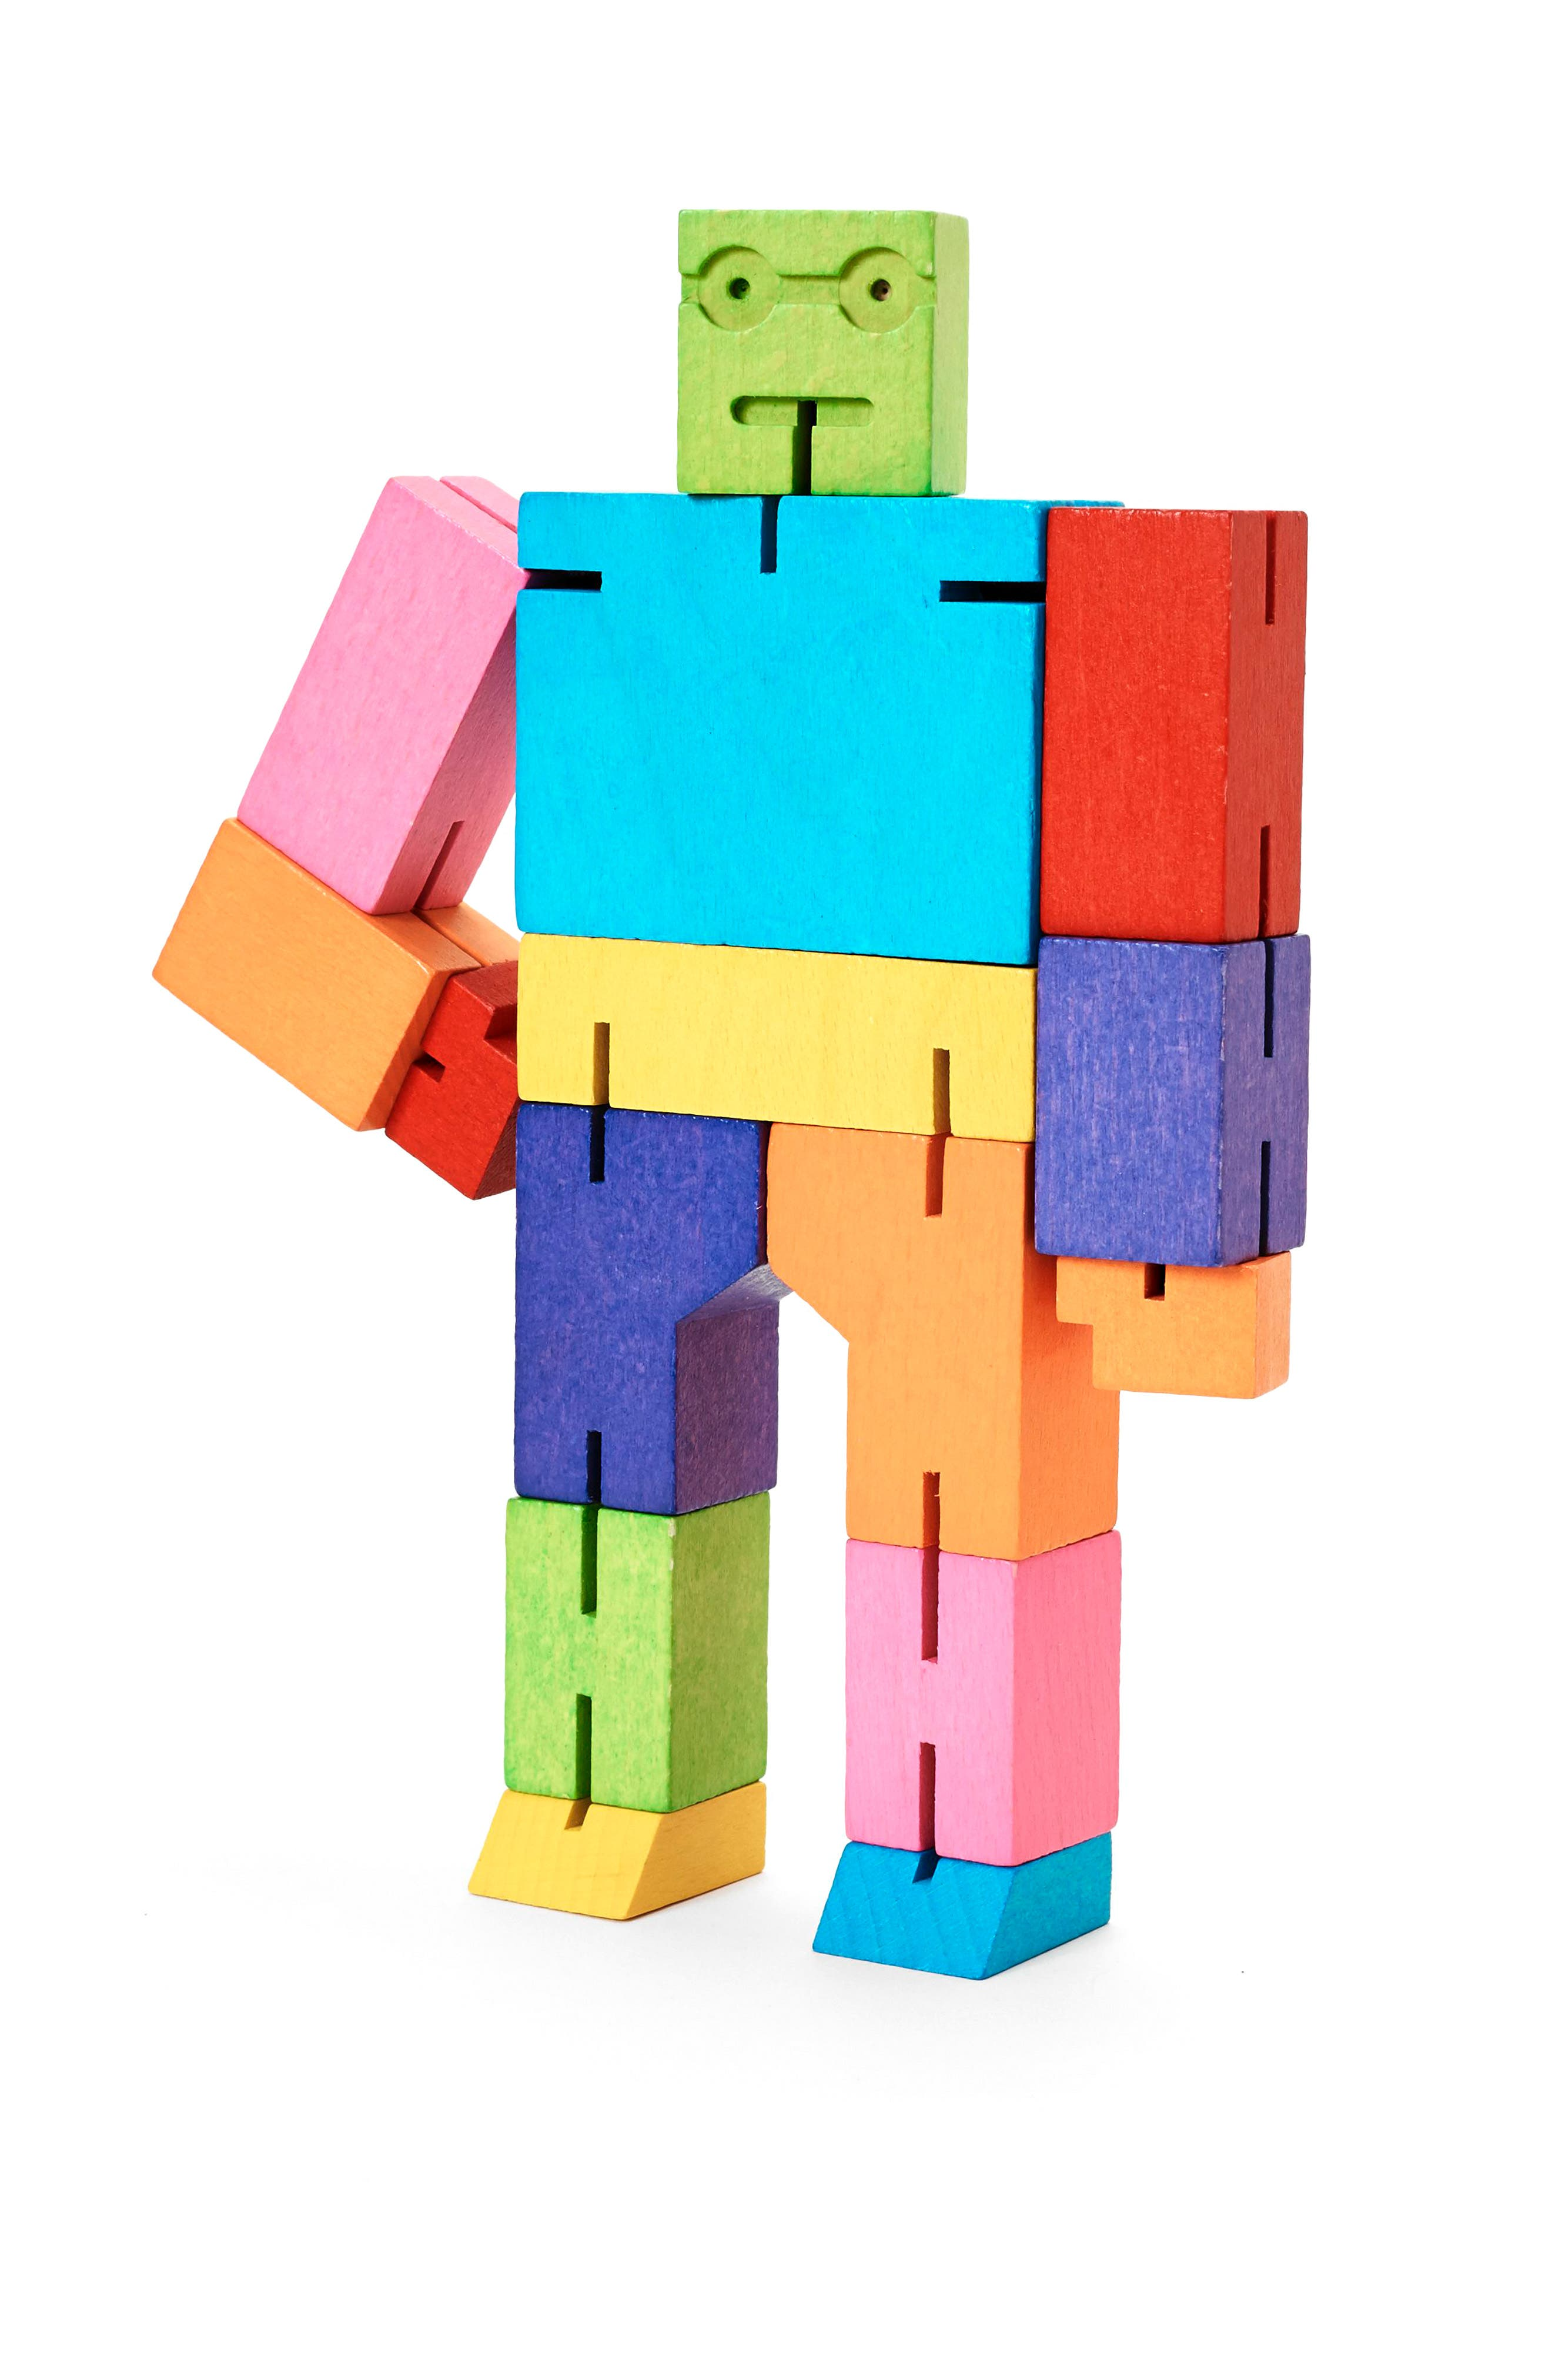 Alternate Image 1 Selected - Areaware Cubebot Small Wooden Robot Toy